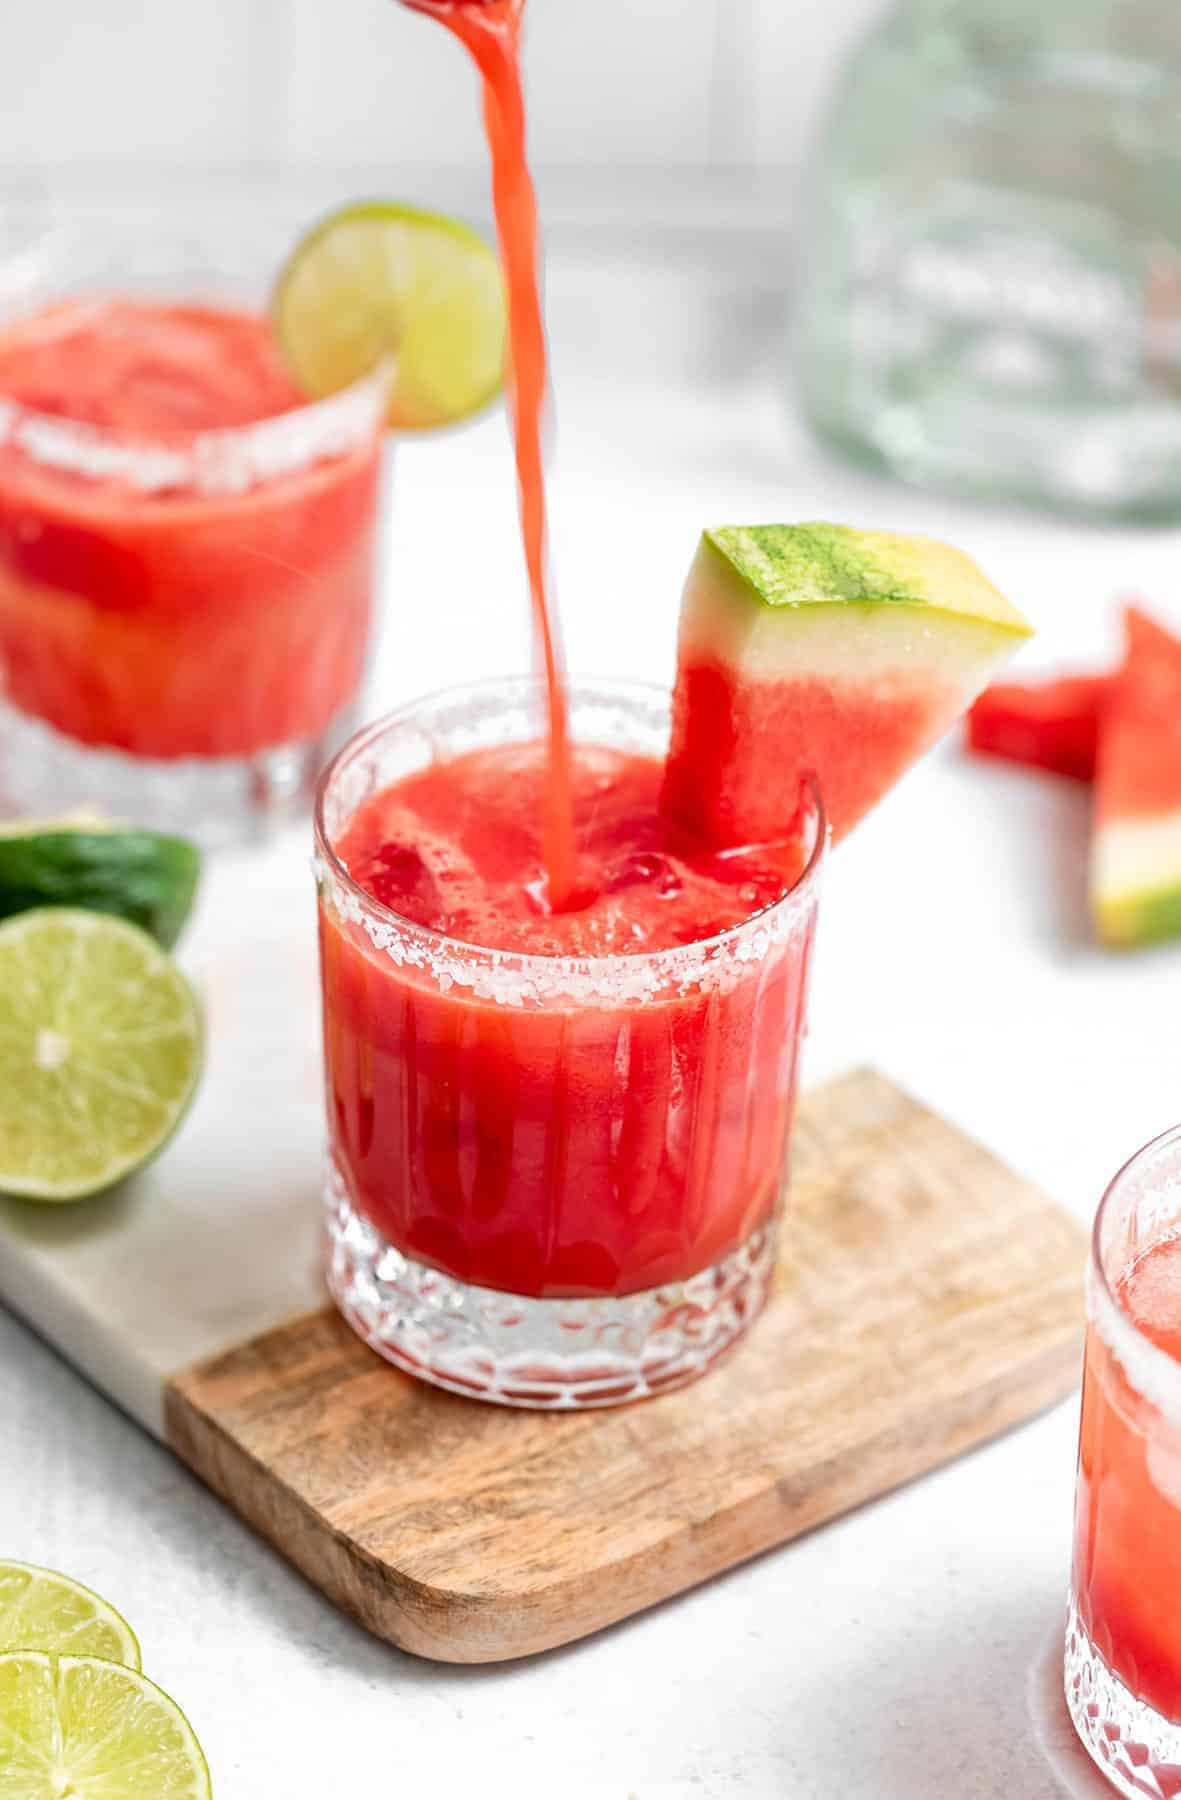 pouring the watermelon margarita into glasses